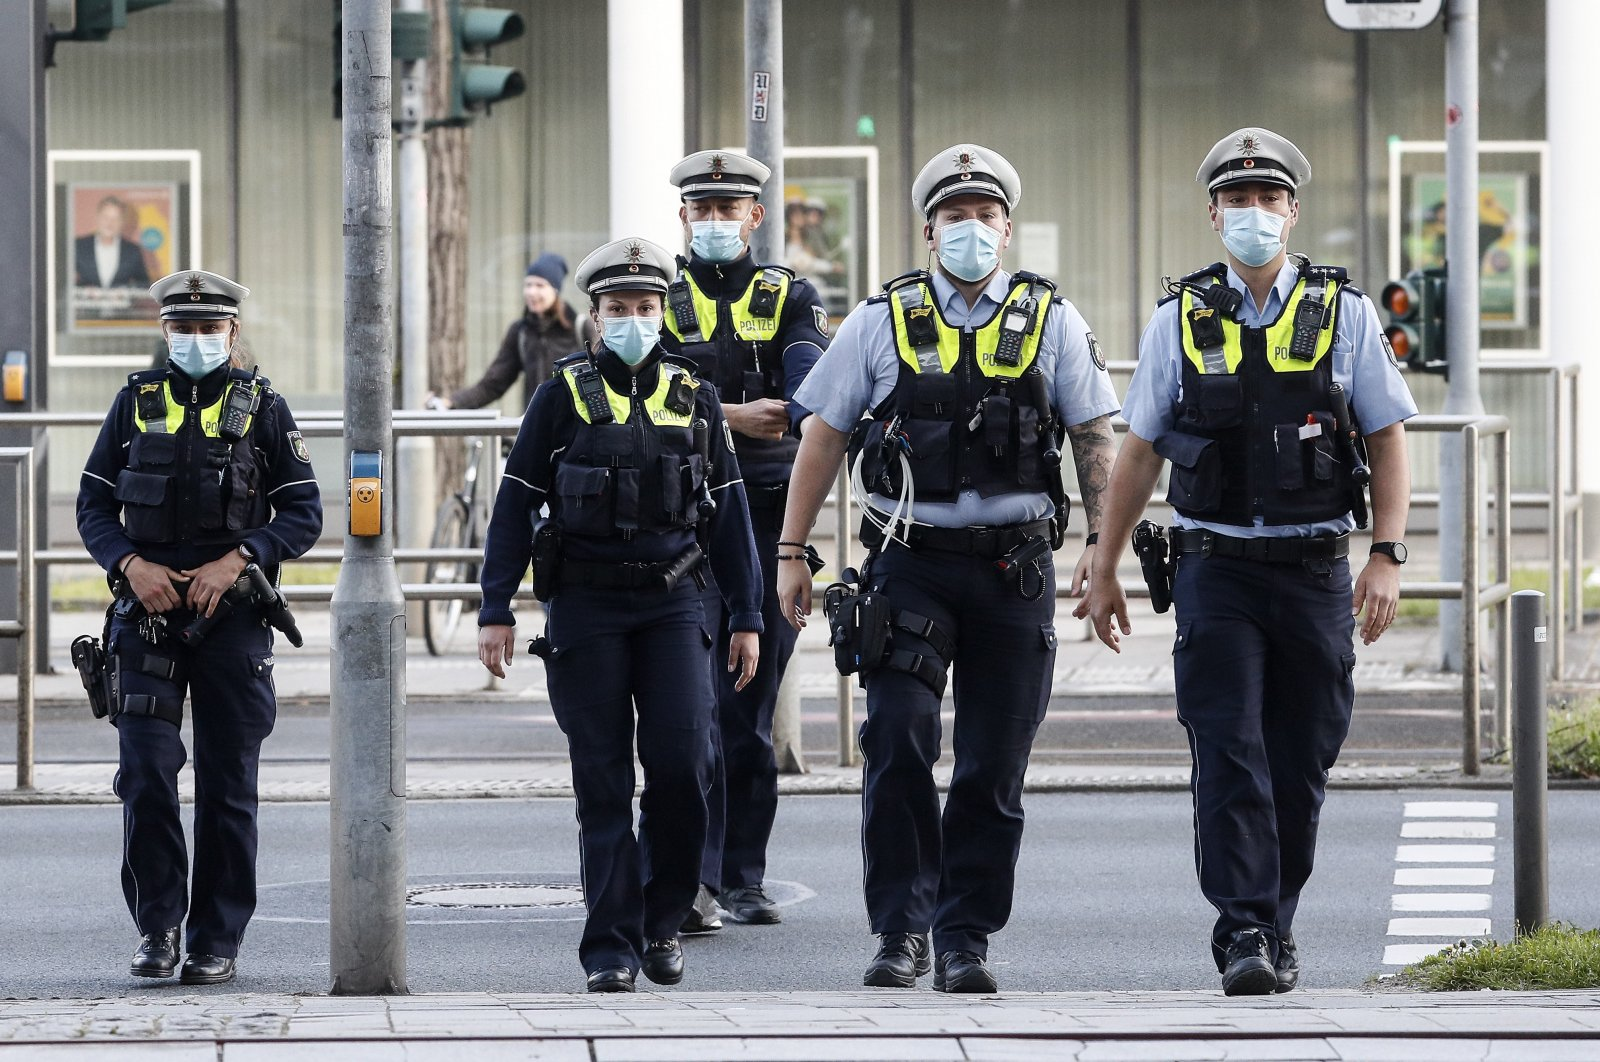 Police secure the court in Duesseldorf, Germany, Thursday, April 29, 2021. (AP Photo)